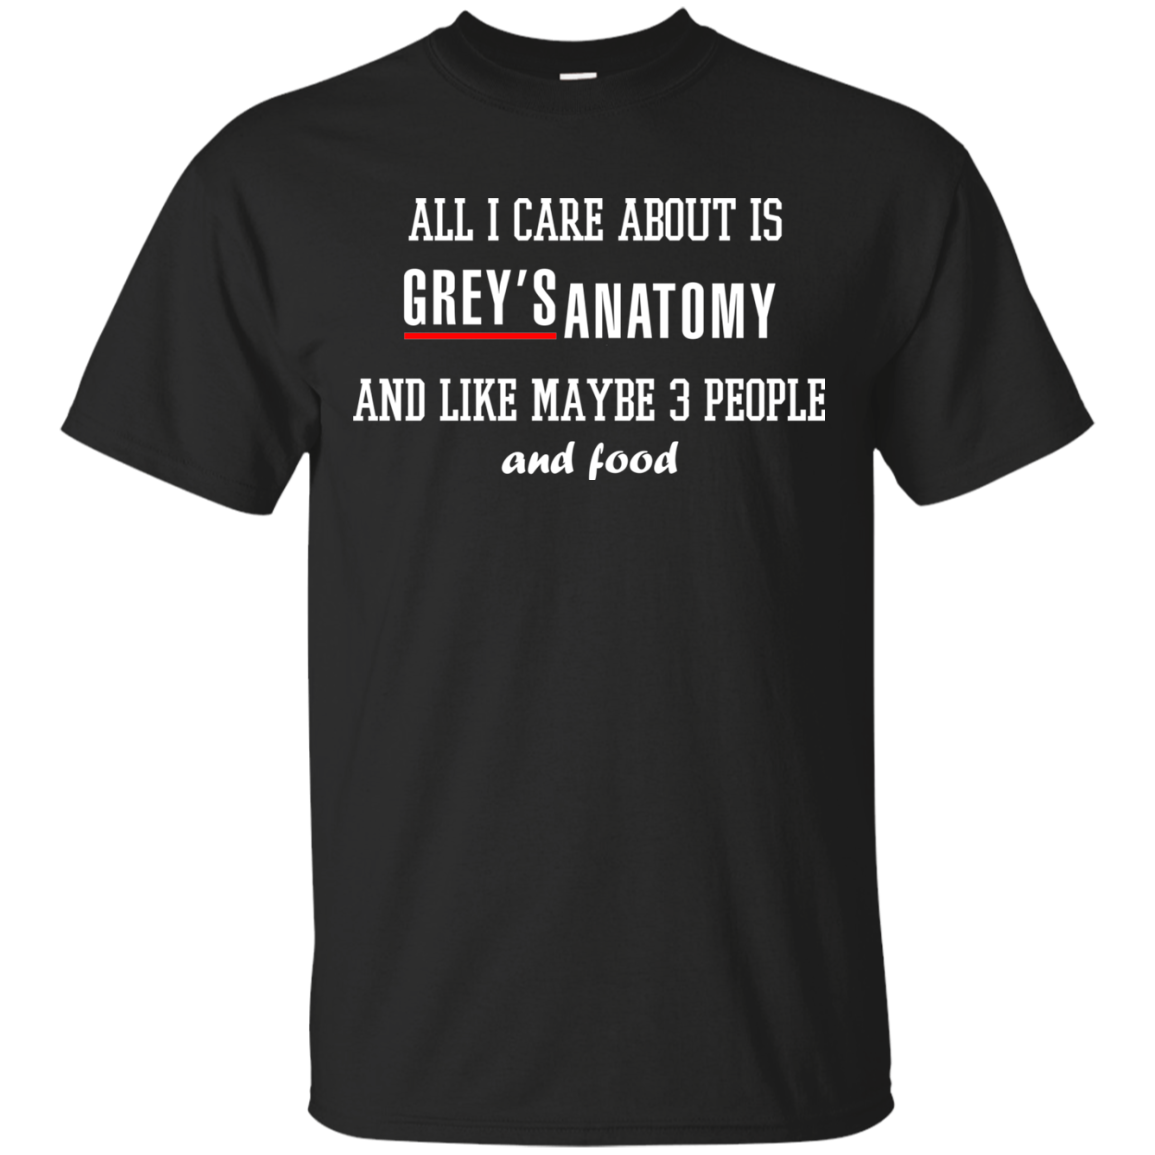 All i care about is Grey\'s Anatomy and maybe 3 people tshirt, tank ...